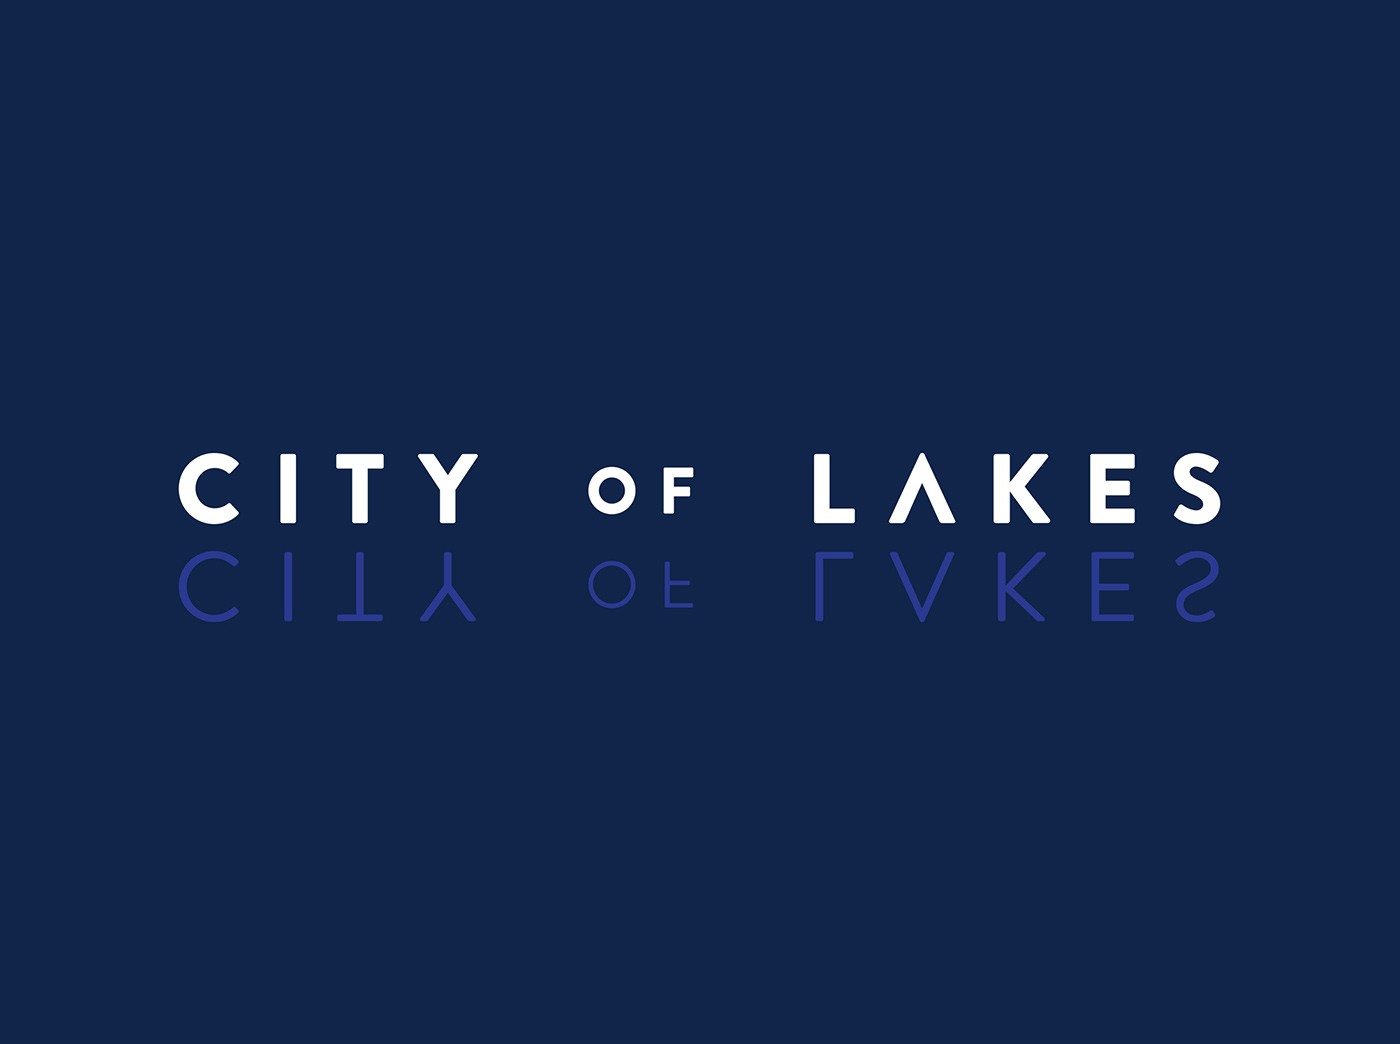 City of Lakes, Minneapolis, Logo, Matthew Wolff Design, Football, Detail, Backneck, Soccer